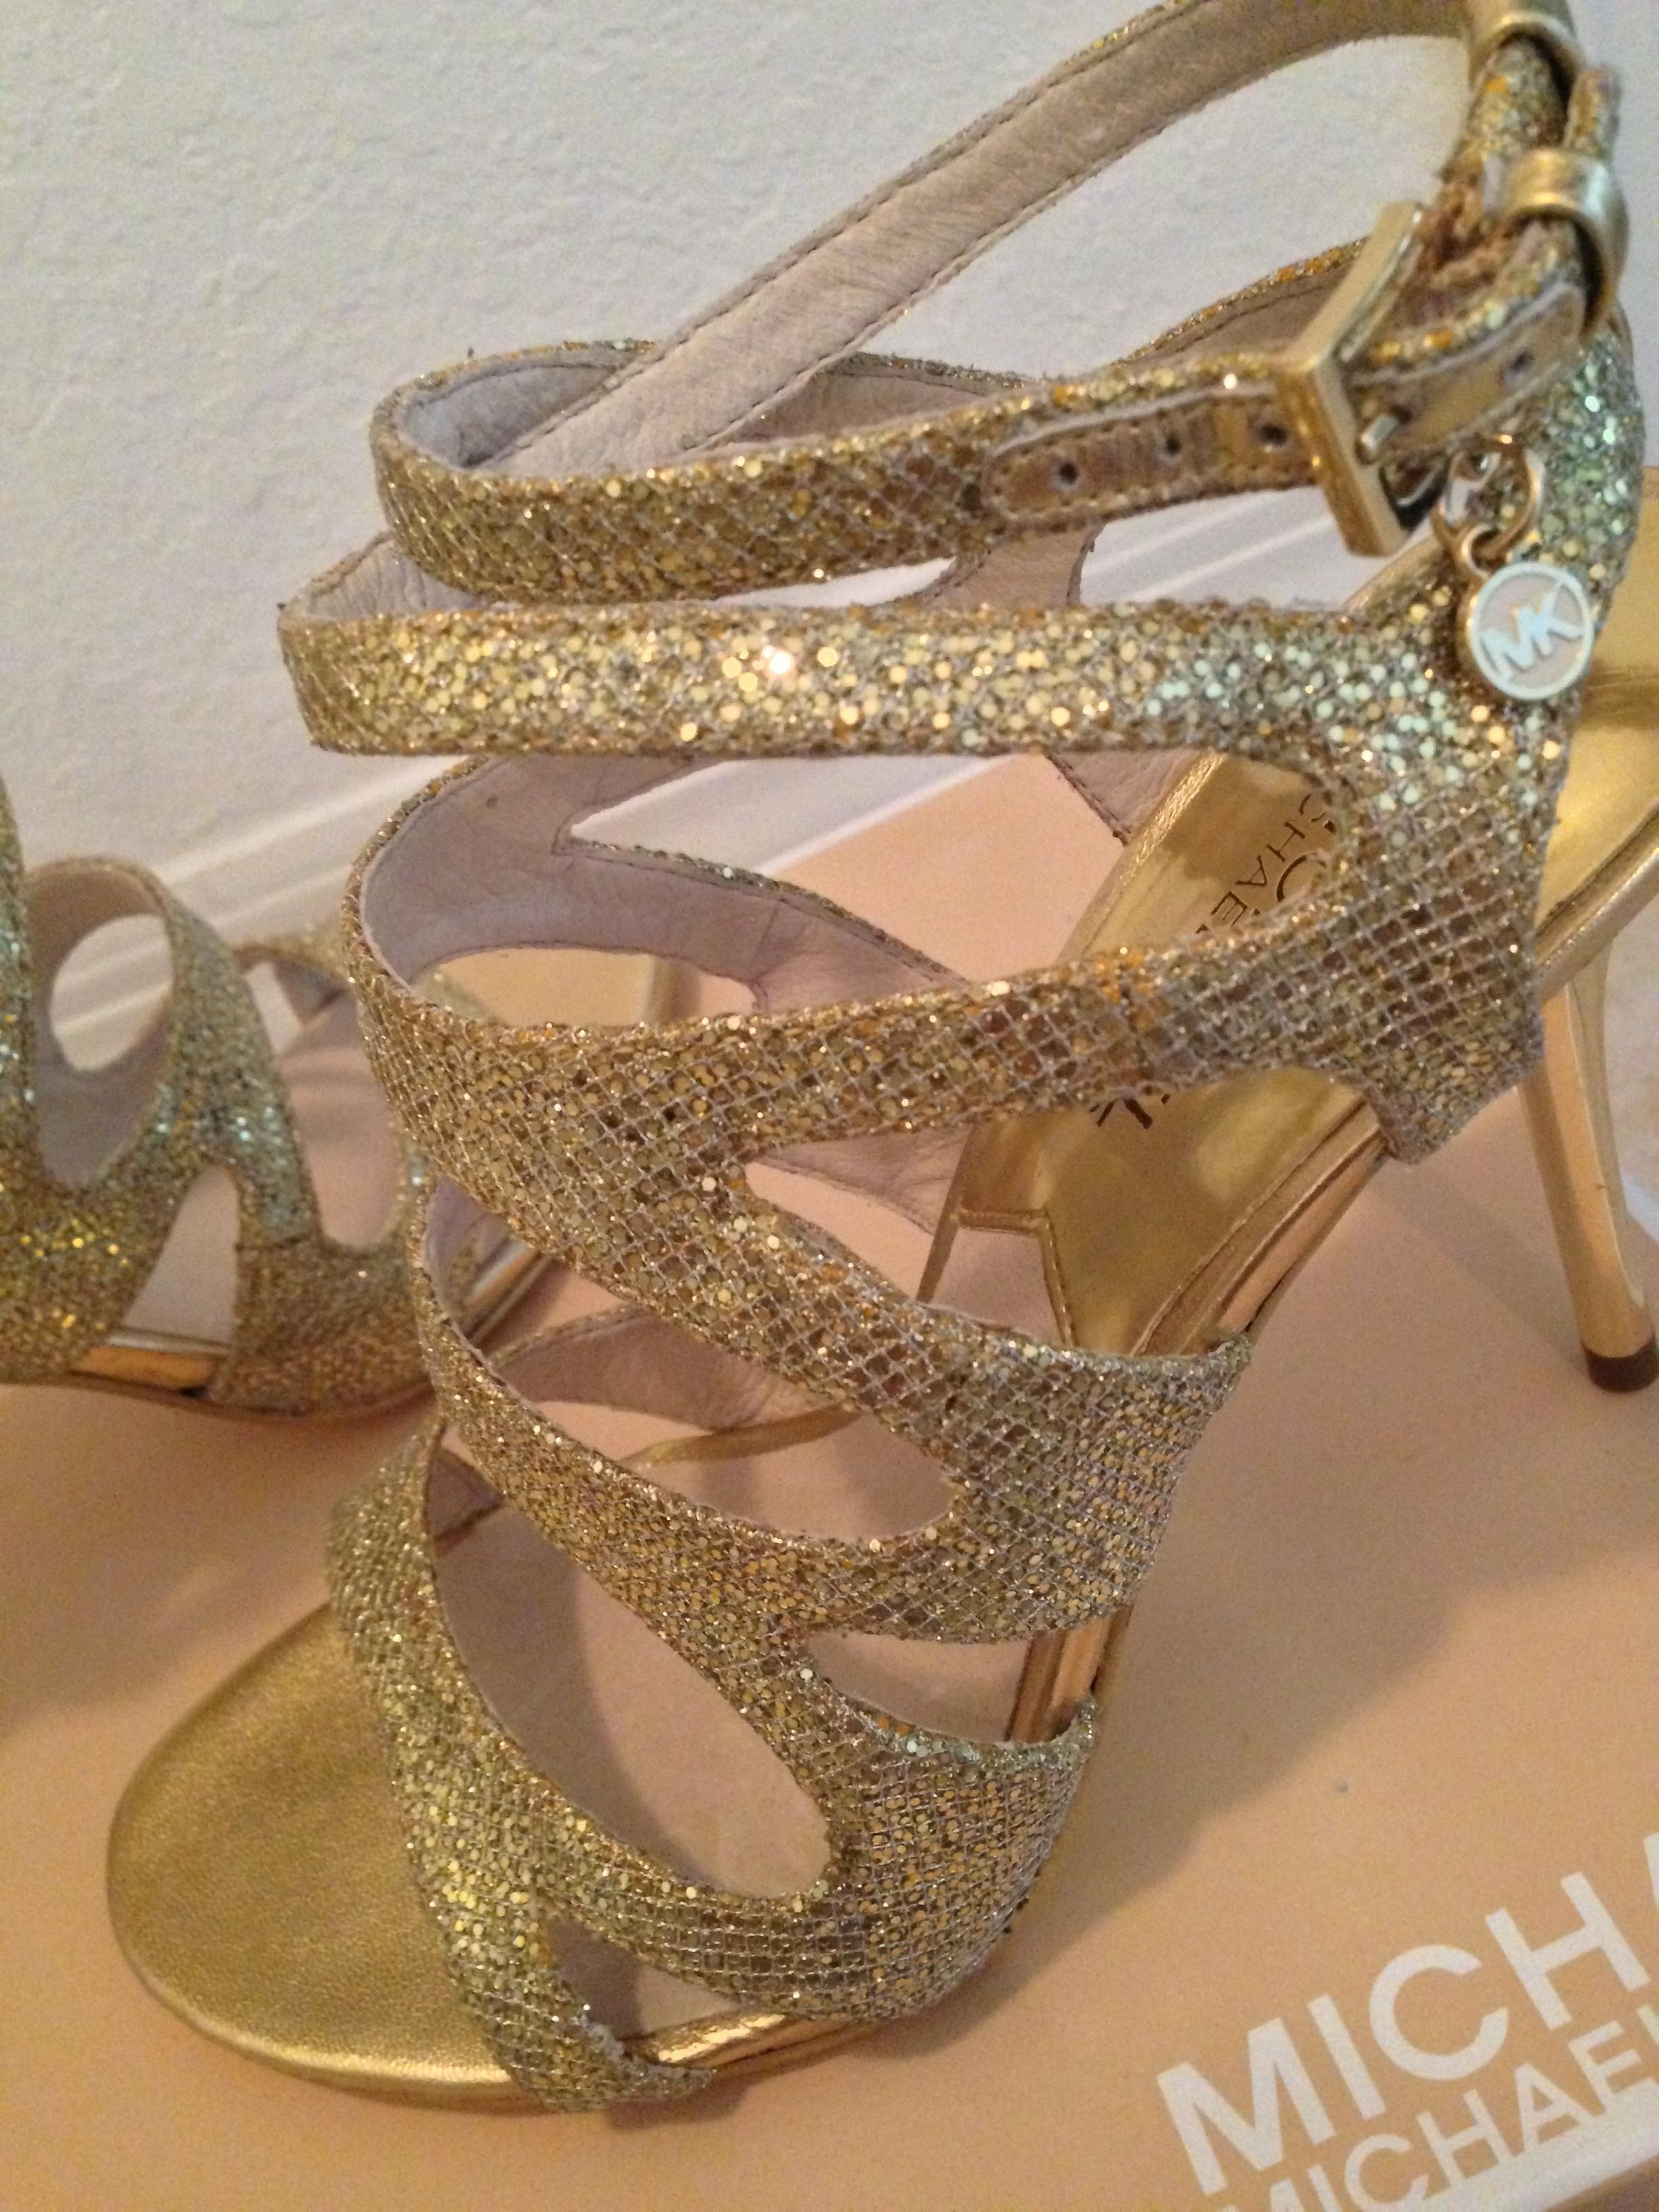 Michael Kors Gold Sparkling Open Toe Heels Designer Glitter Out Sandals  Size US 6.5